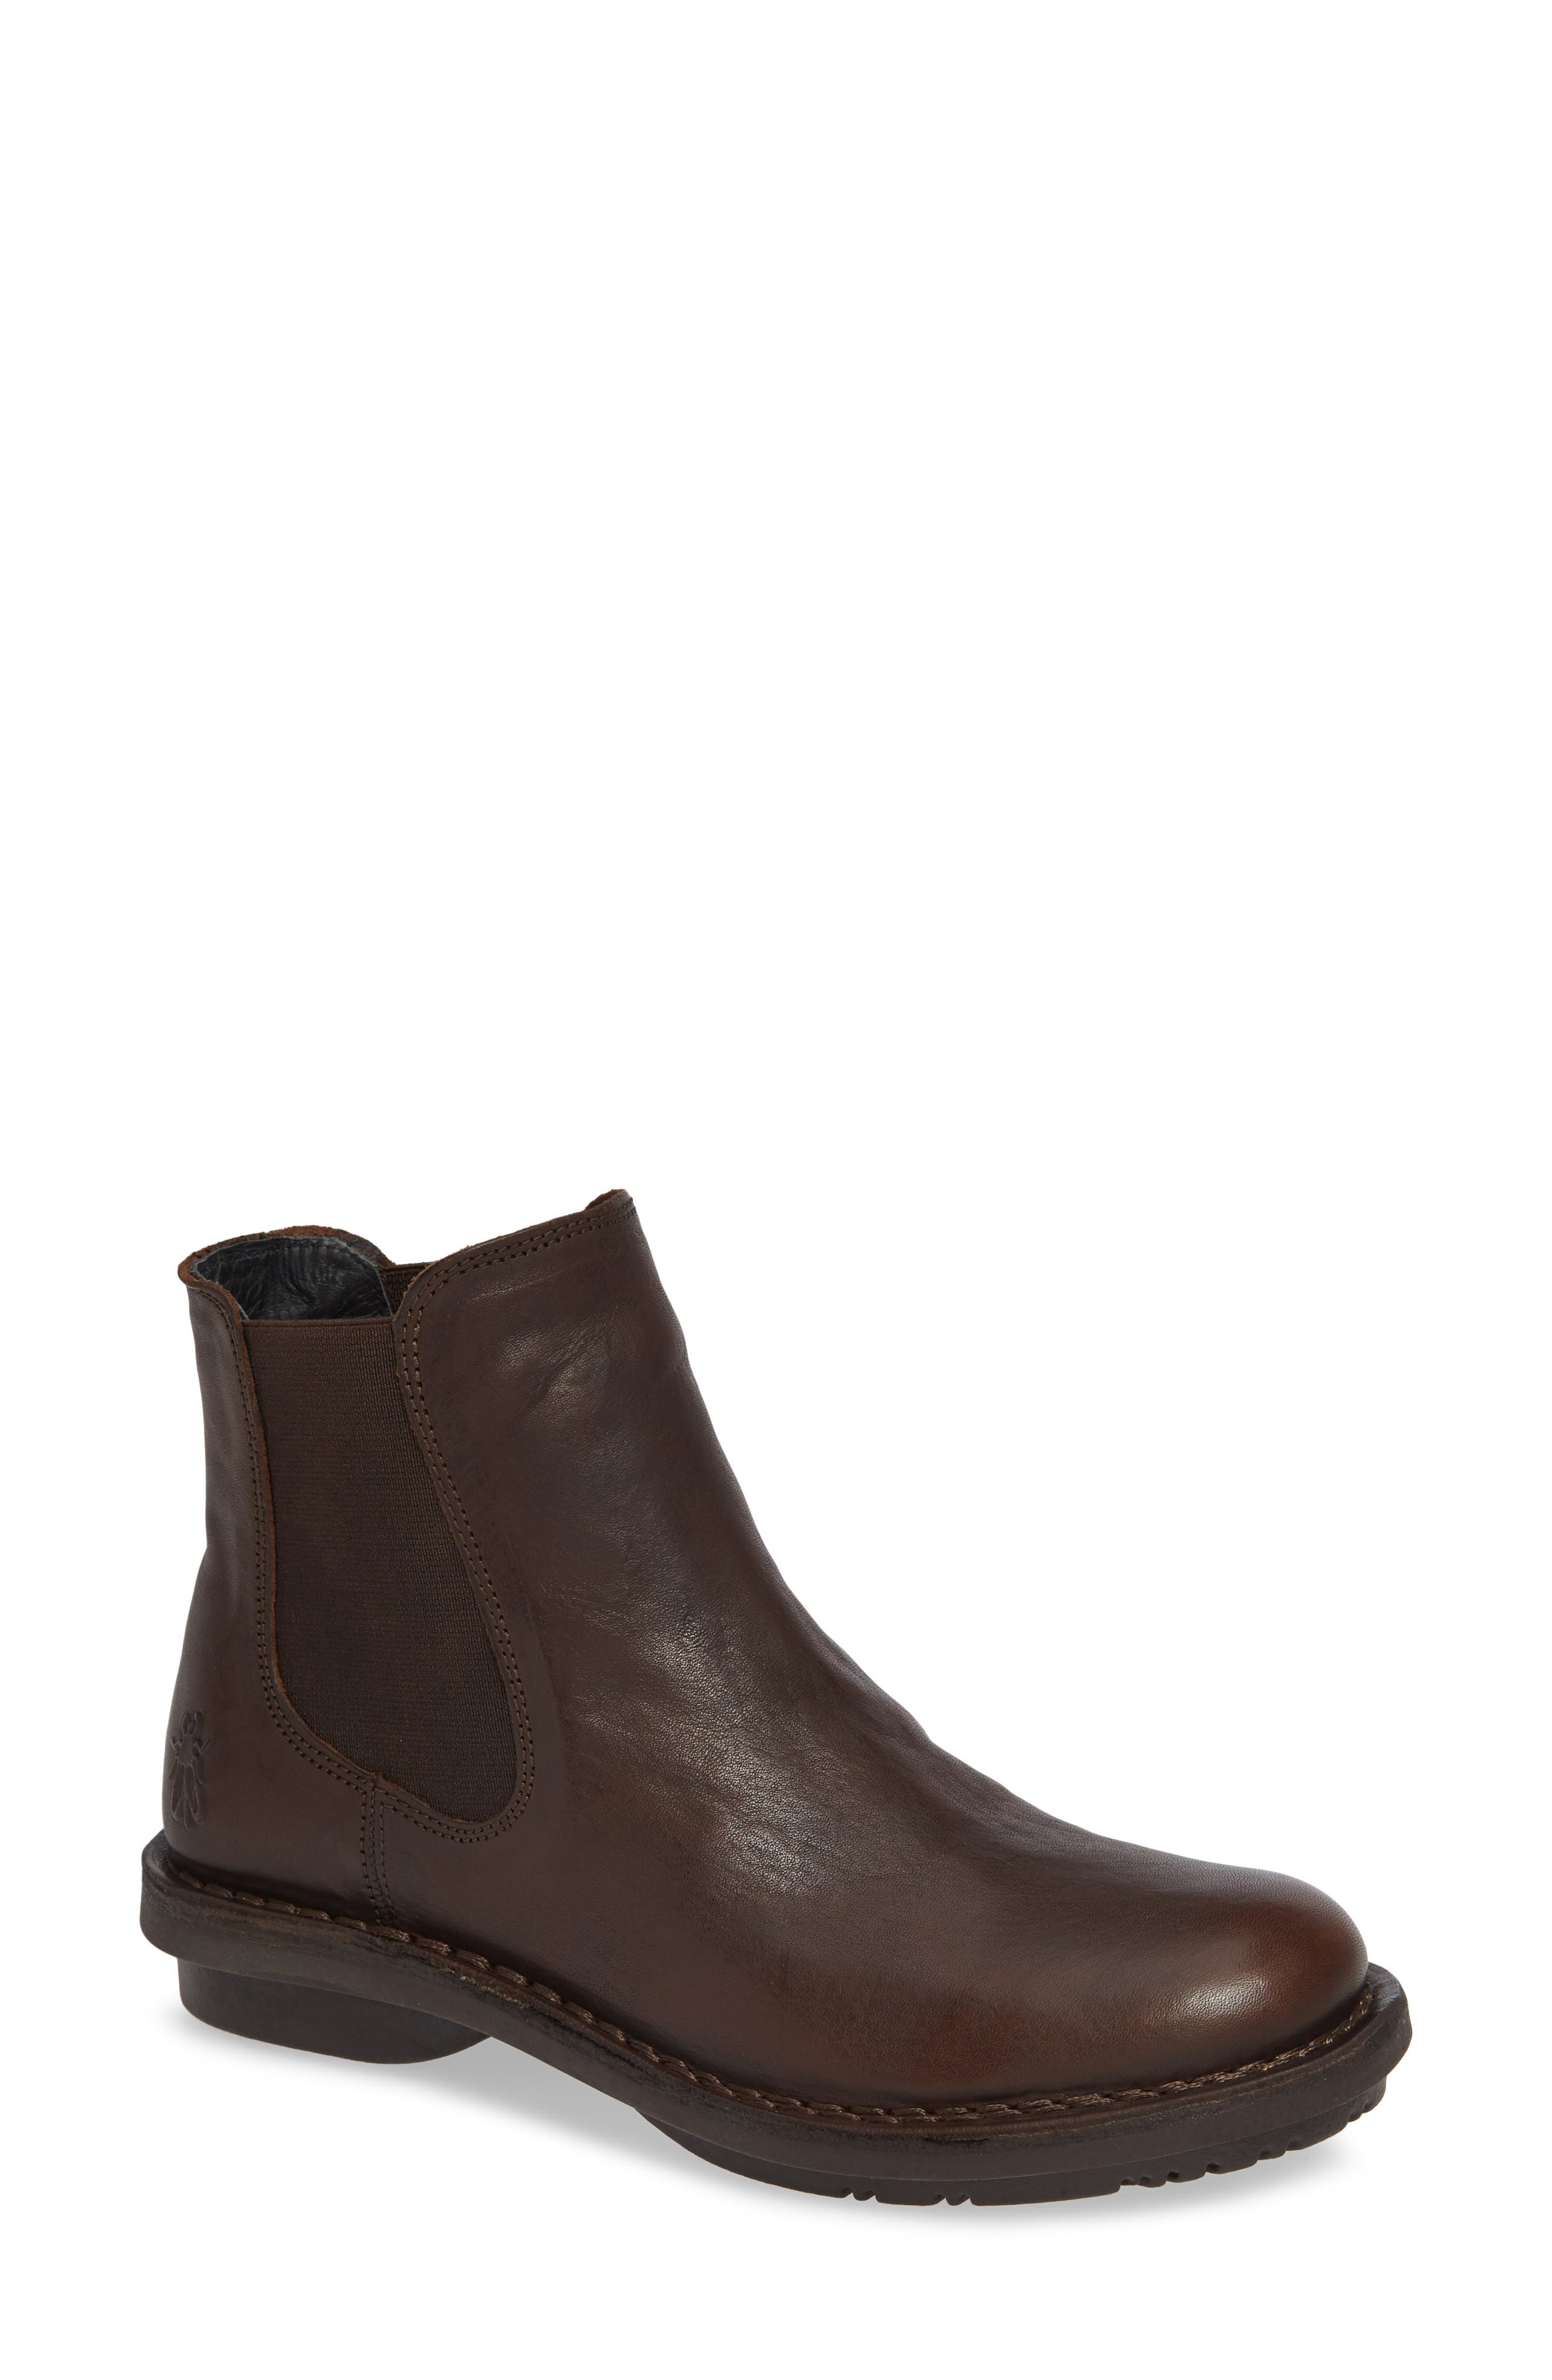 Feed Chelsea Bootie,                             Main thumbnail 1, color,                             BROWN